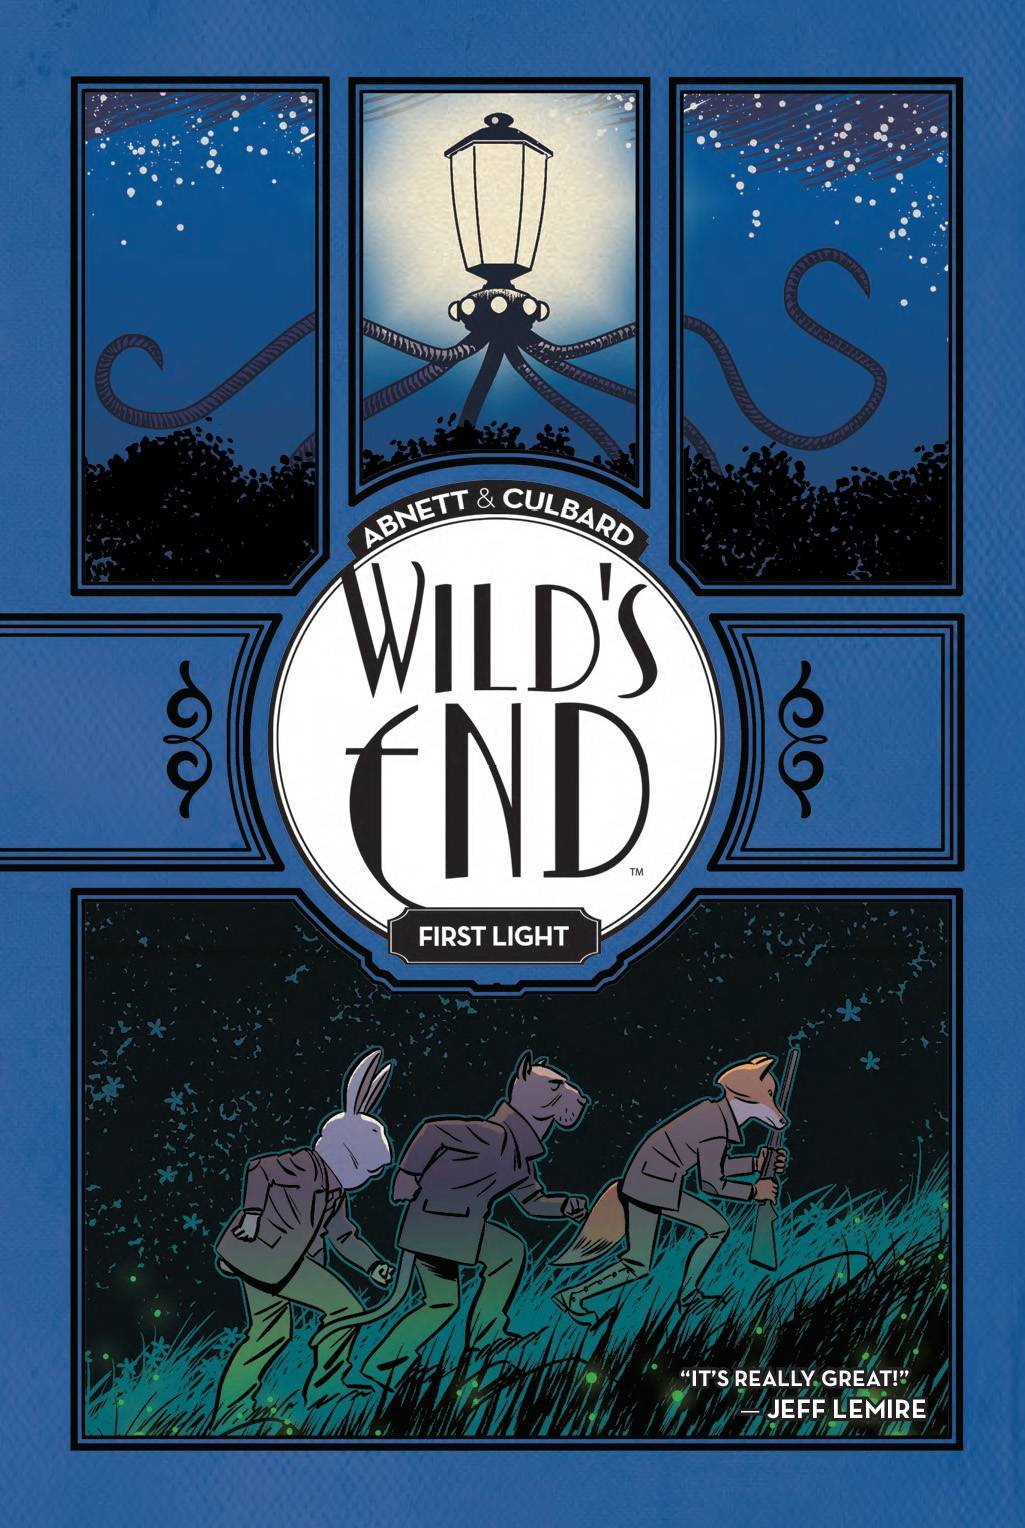 Wild's End Volume 1: First Light: Amazon: Dan Abnett, Inj Bulbard:  9781608867356: Books